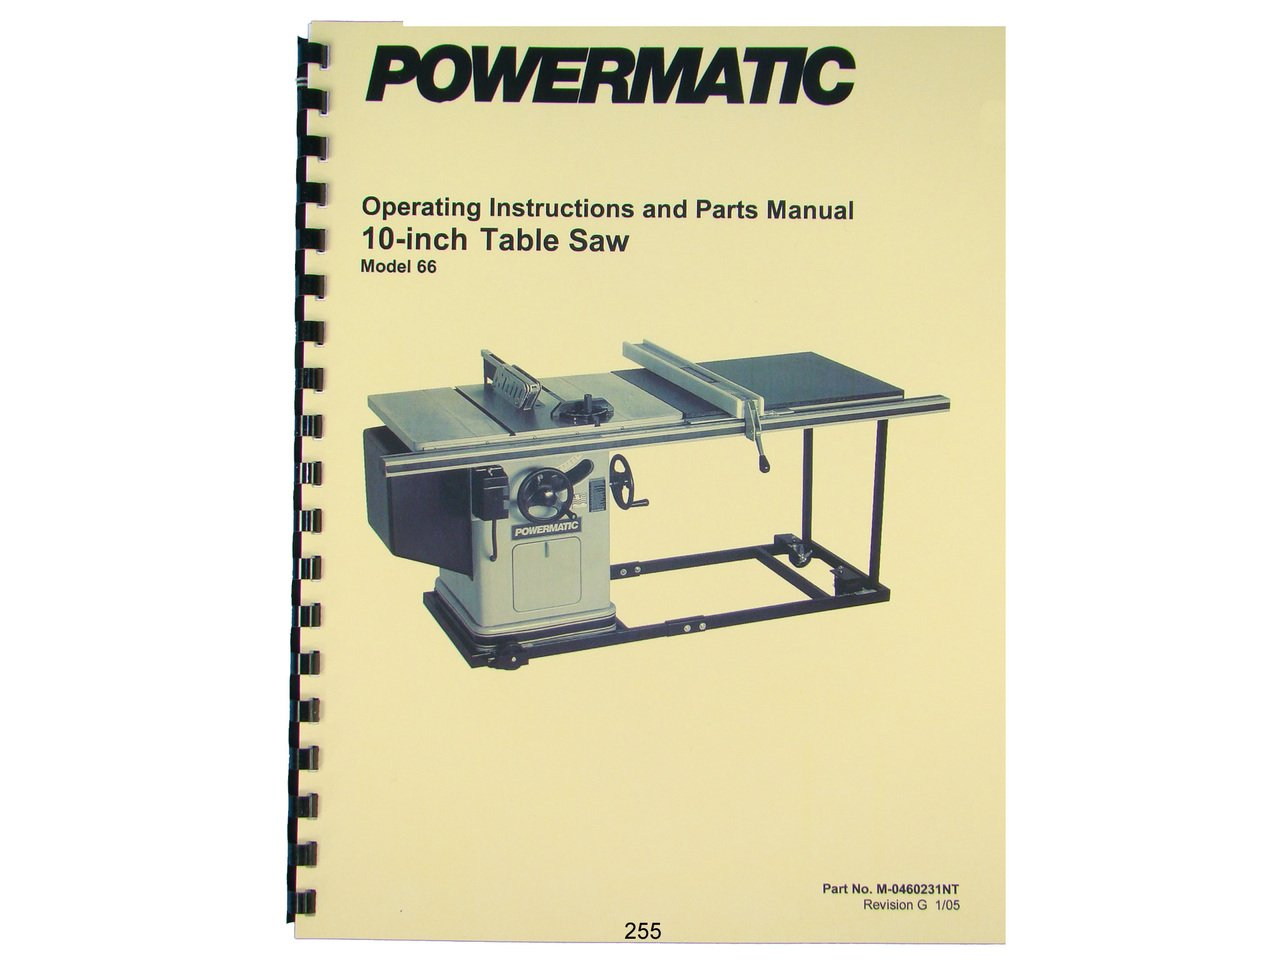 Powermatic 66 Wiring Diagram Oliver Model 10 Table Saw Instruction Parts List Manual Rh Amazon Com New Style 1999